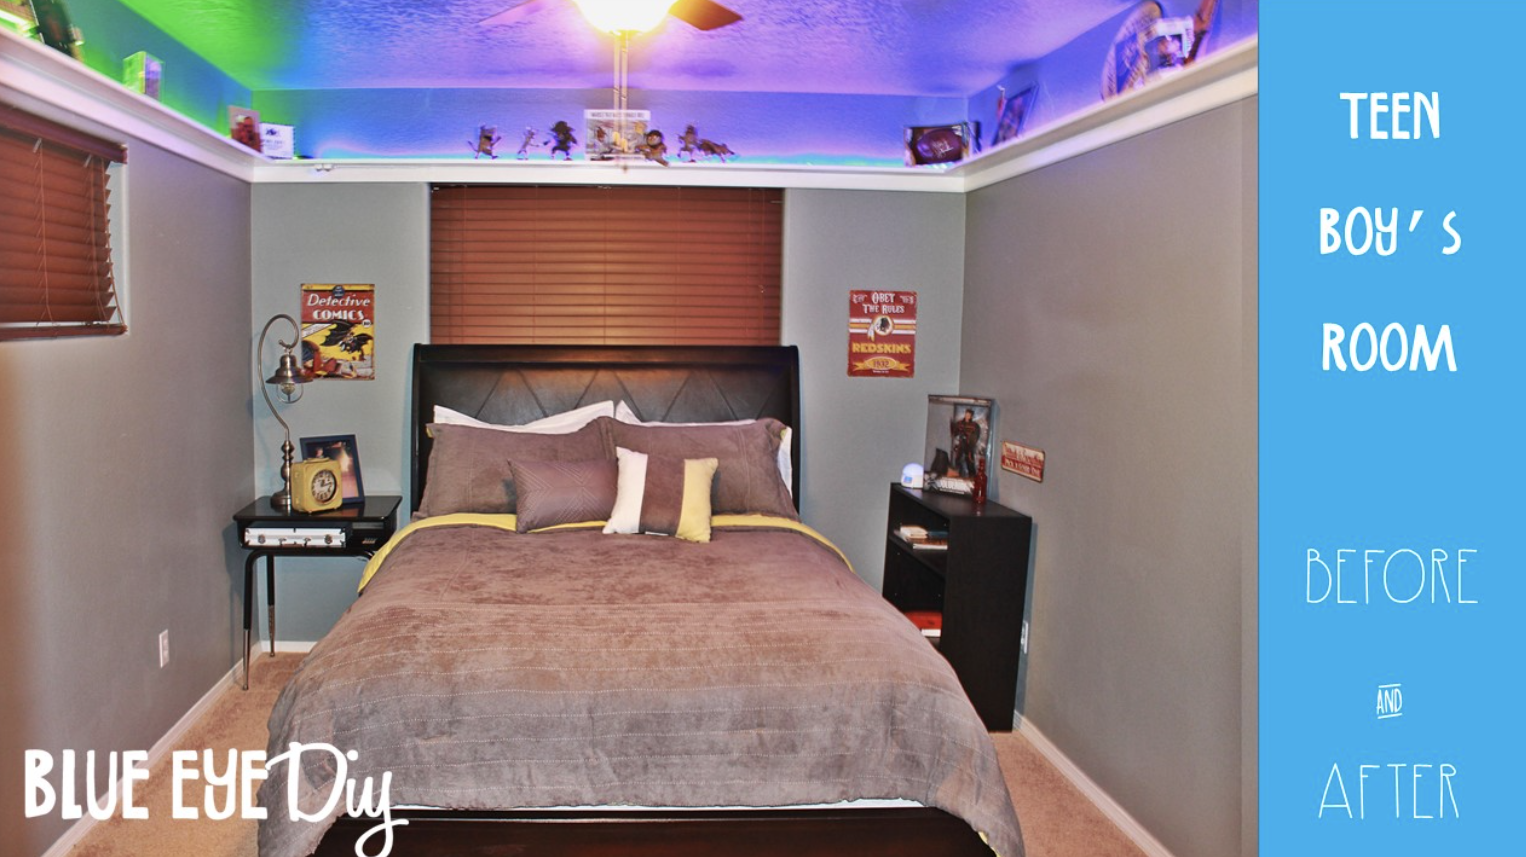 BEFORE AND AFTER- TEEN BOY'S ROOM WITH COOL LED SHELVES!!!